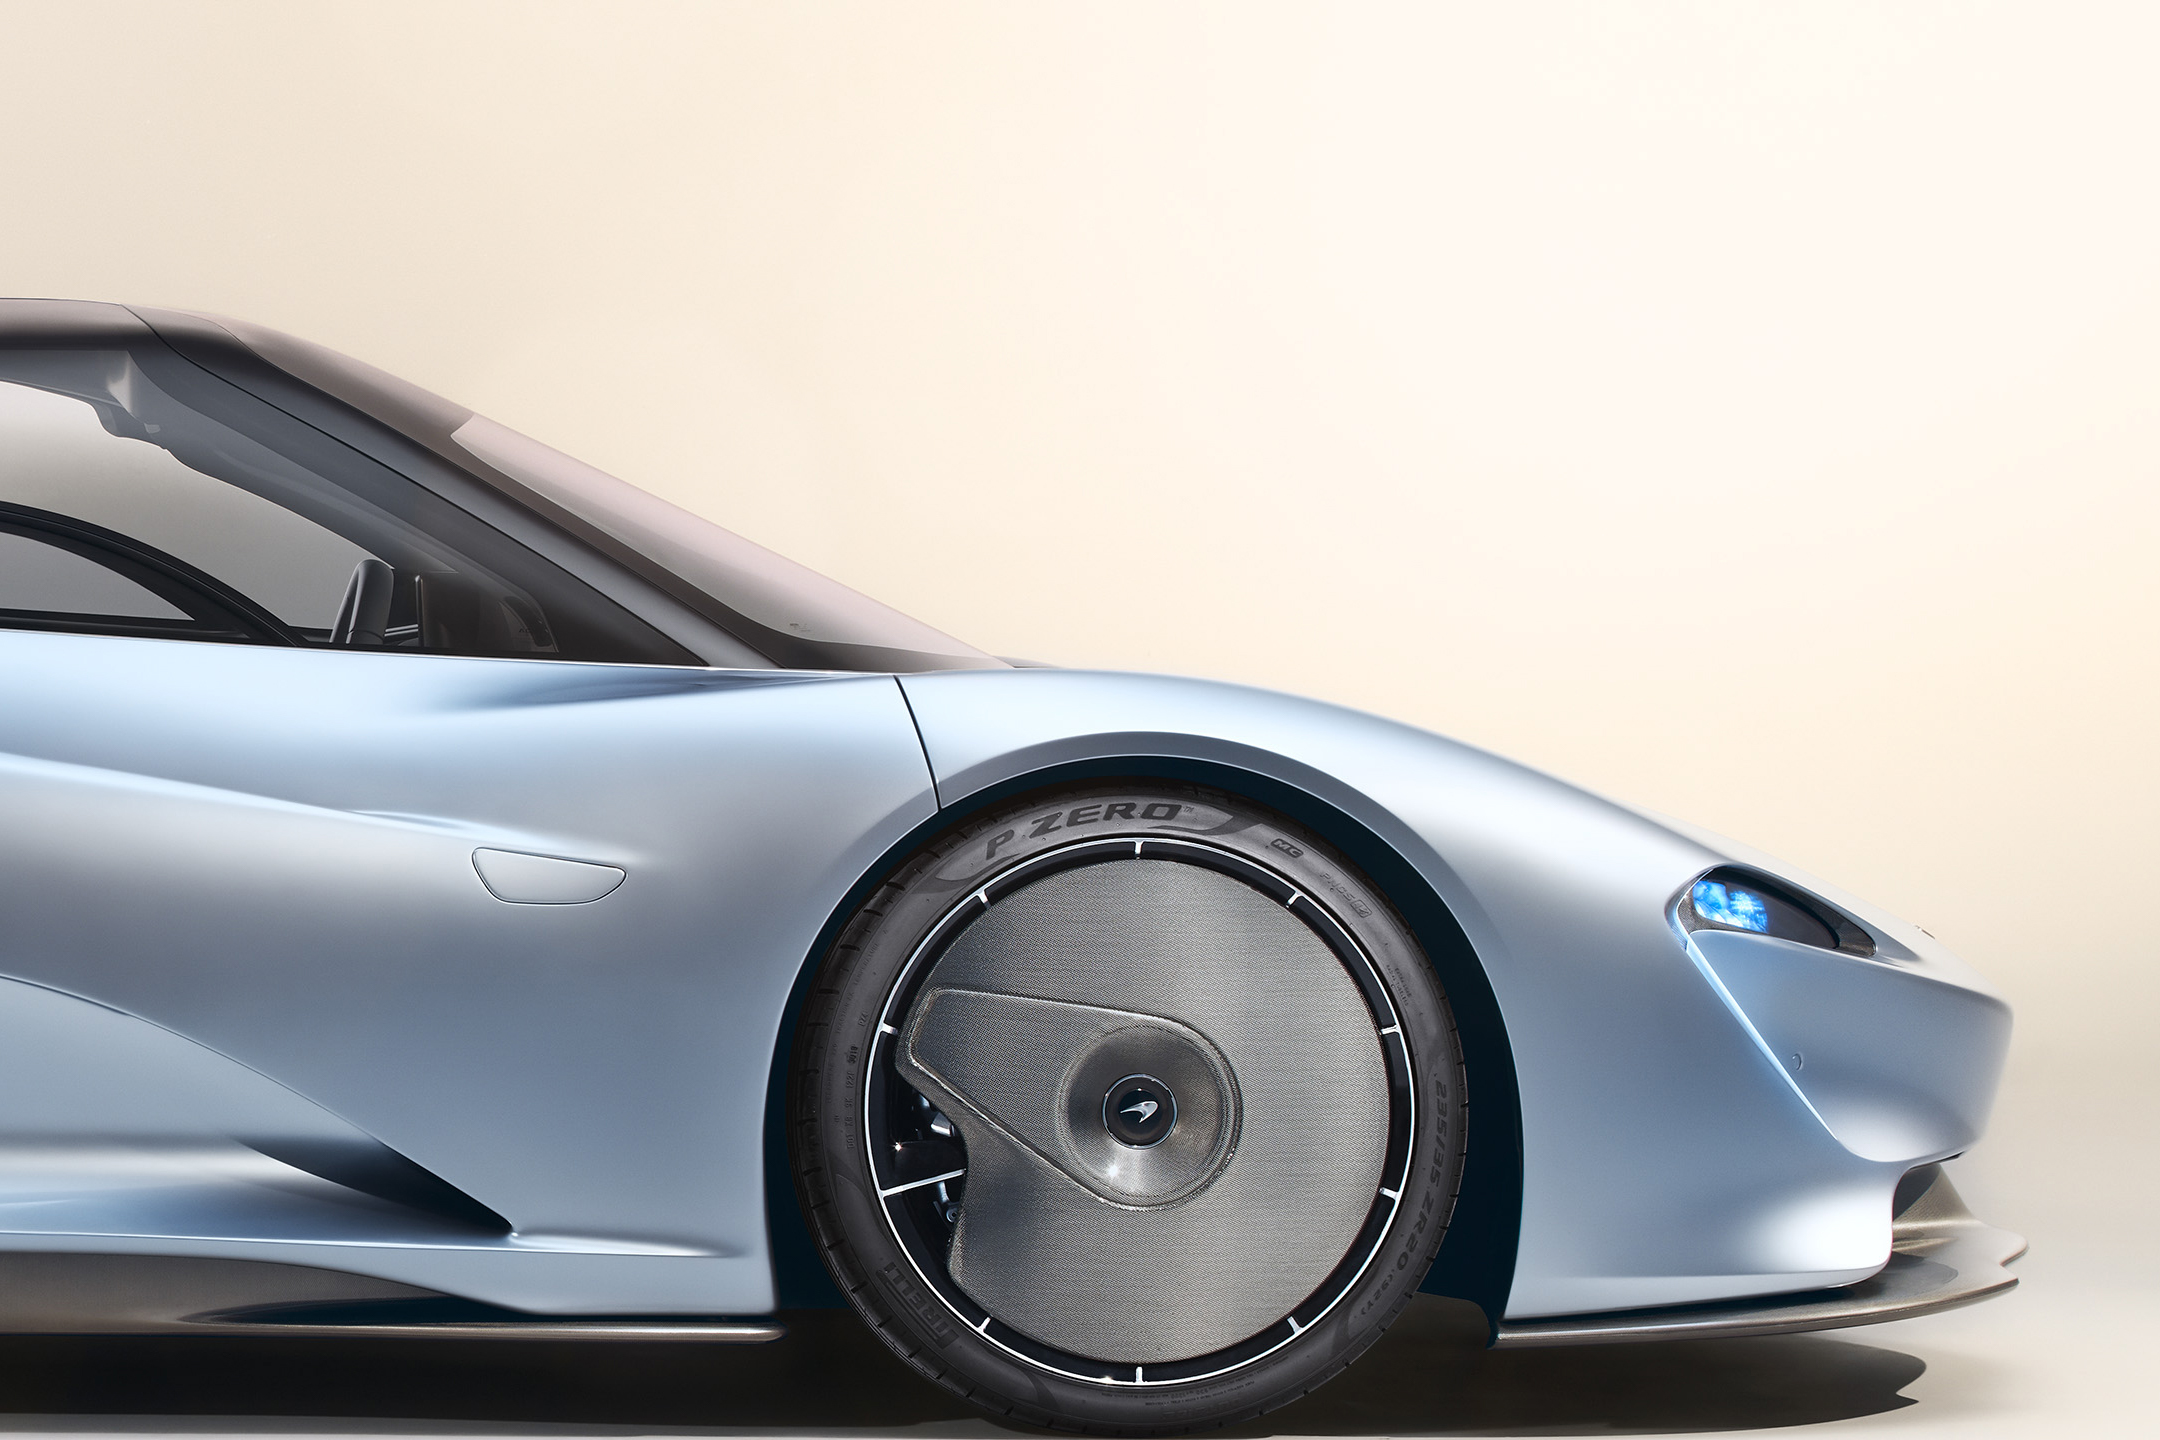 McLaren Speedtail - 2018 - front wheel